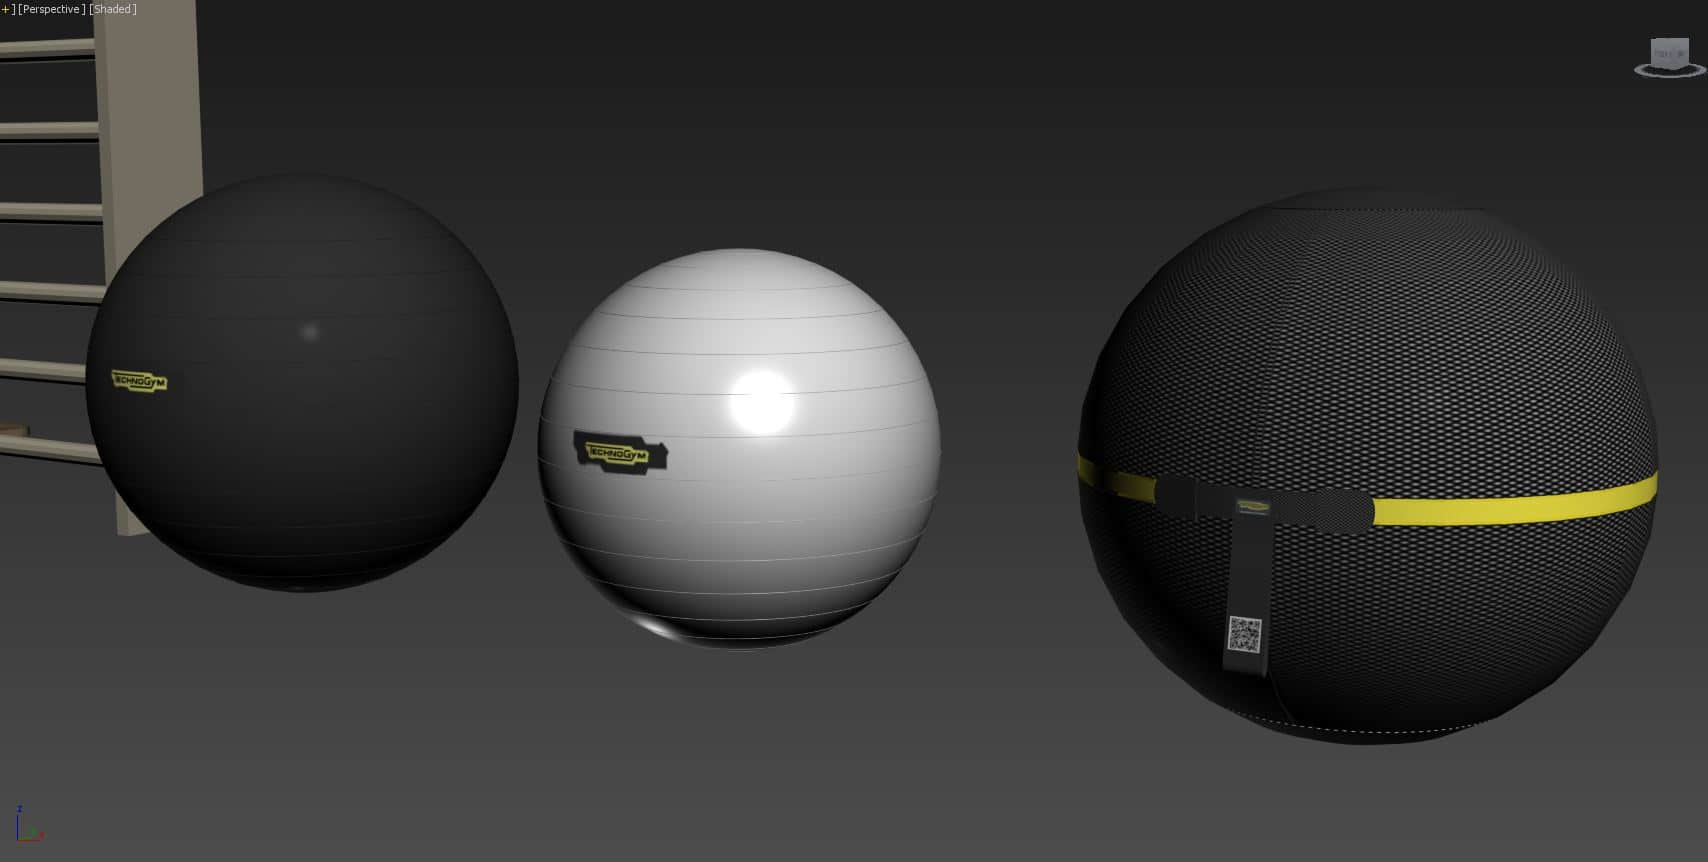 Technogym Wellness Ball ACTIVE 3D Model for Download (3)